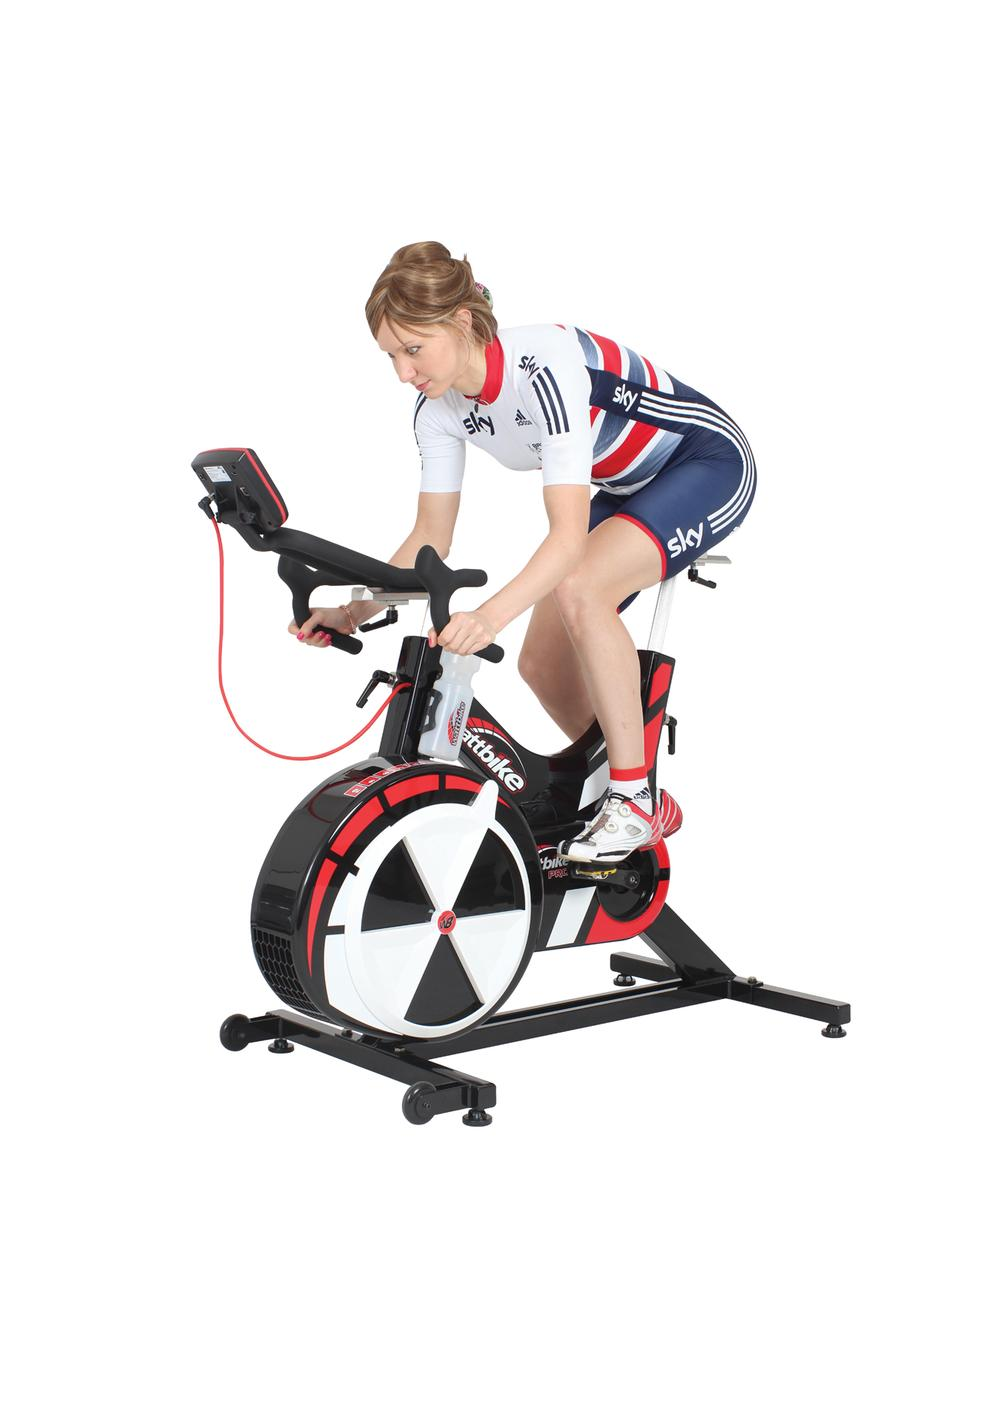 Wattbike ambassador and Olympic and double World Track Cycling champion Joanna Rowsell